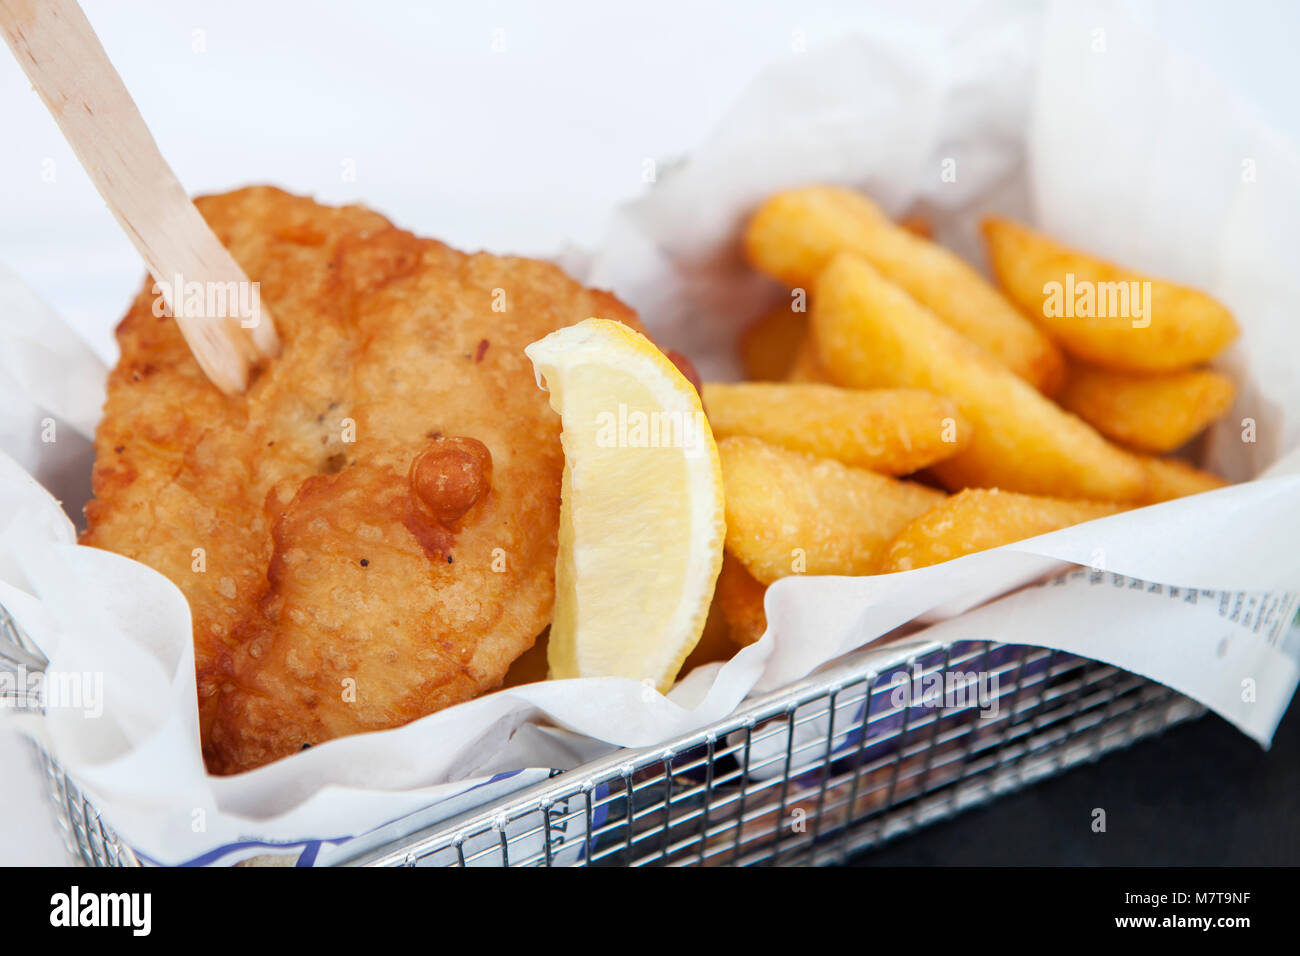 Fish and chips, with a chip fork in a metal basket. - Stock Image